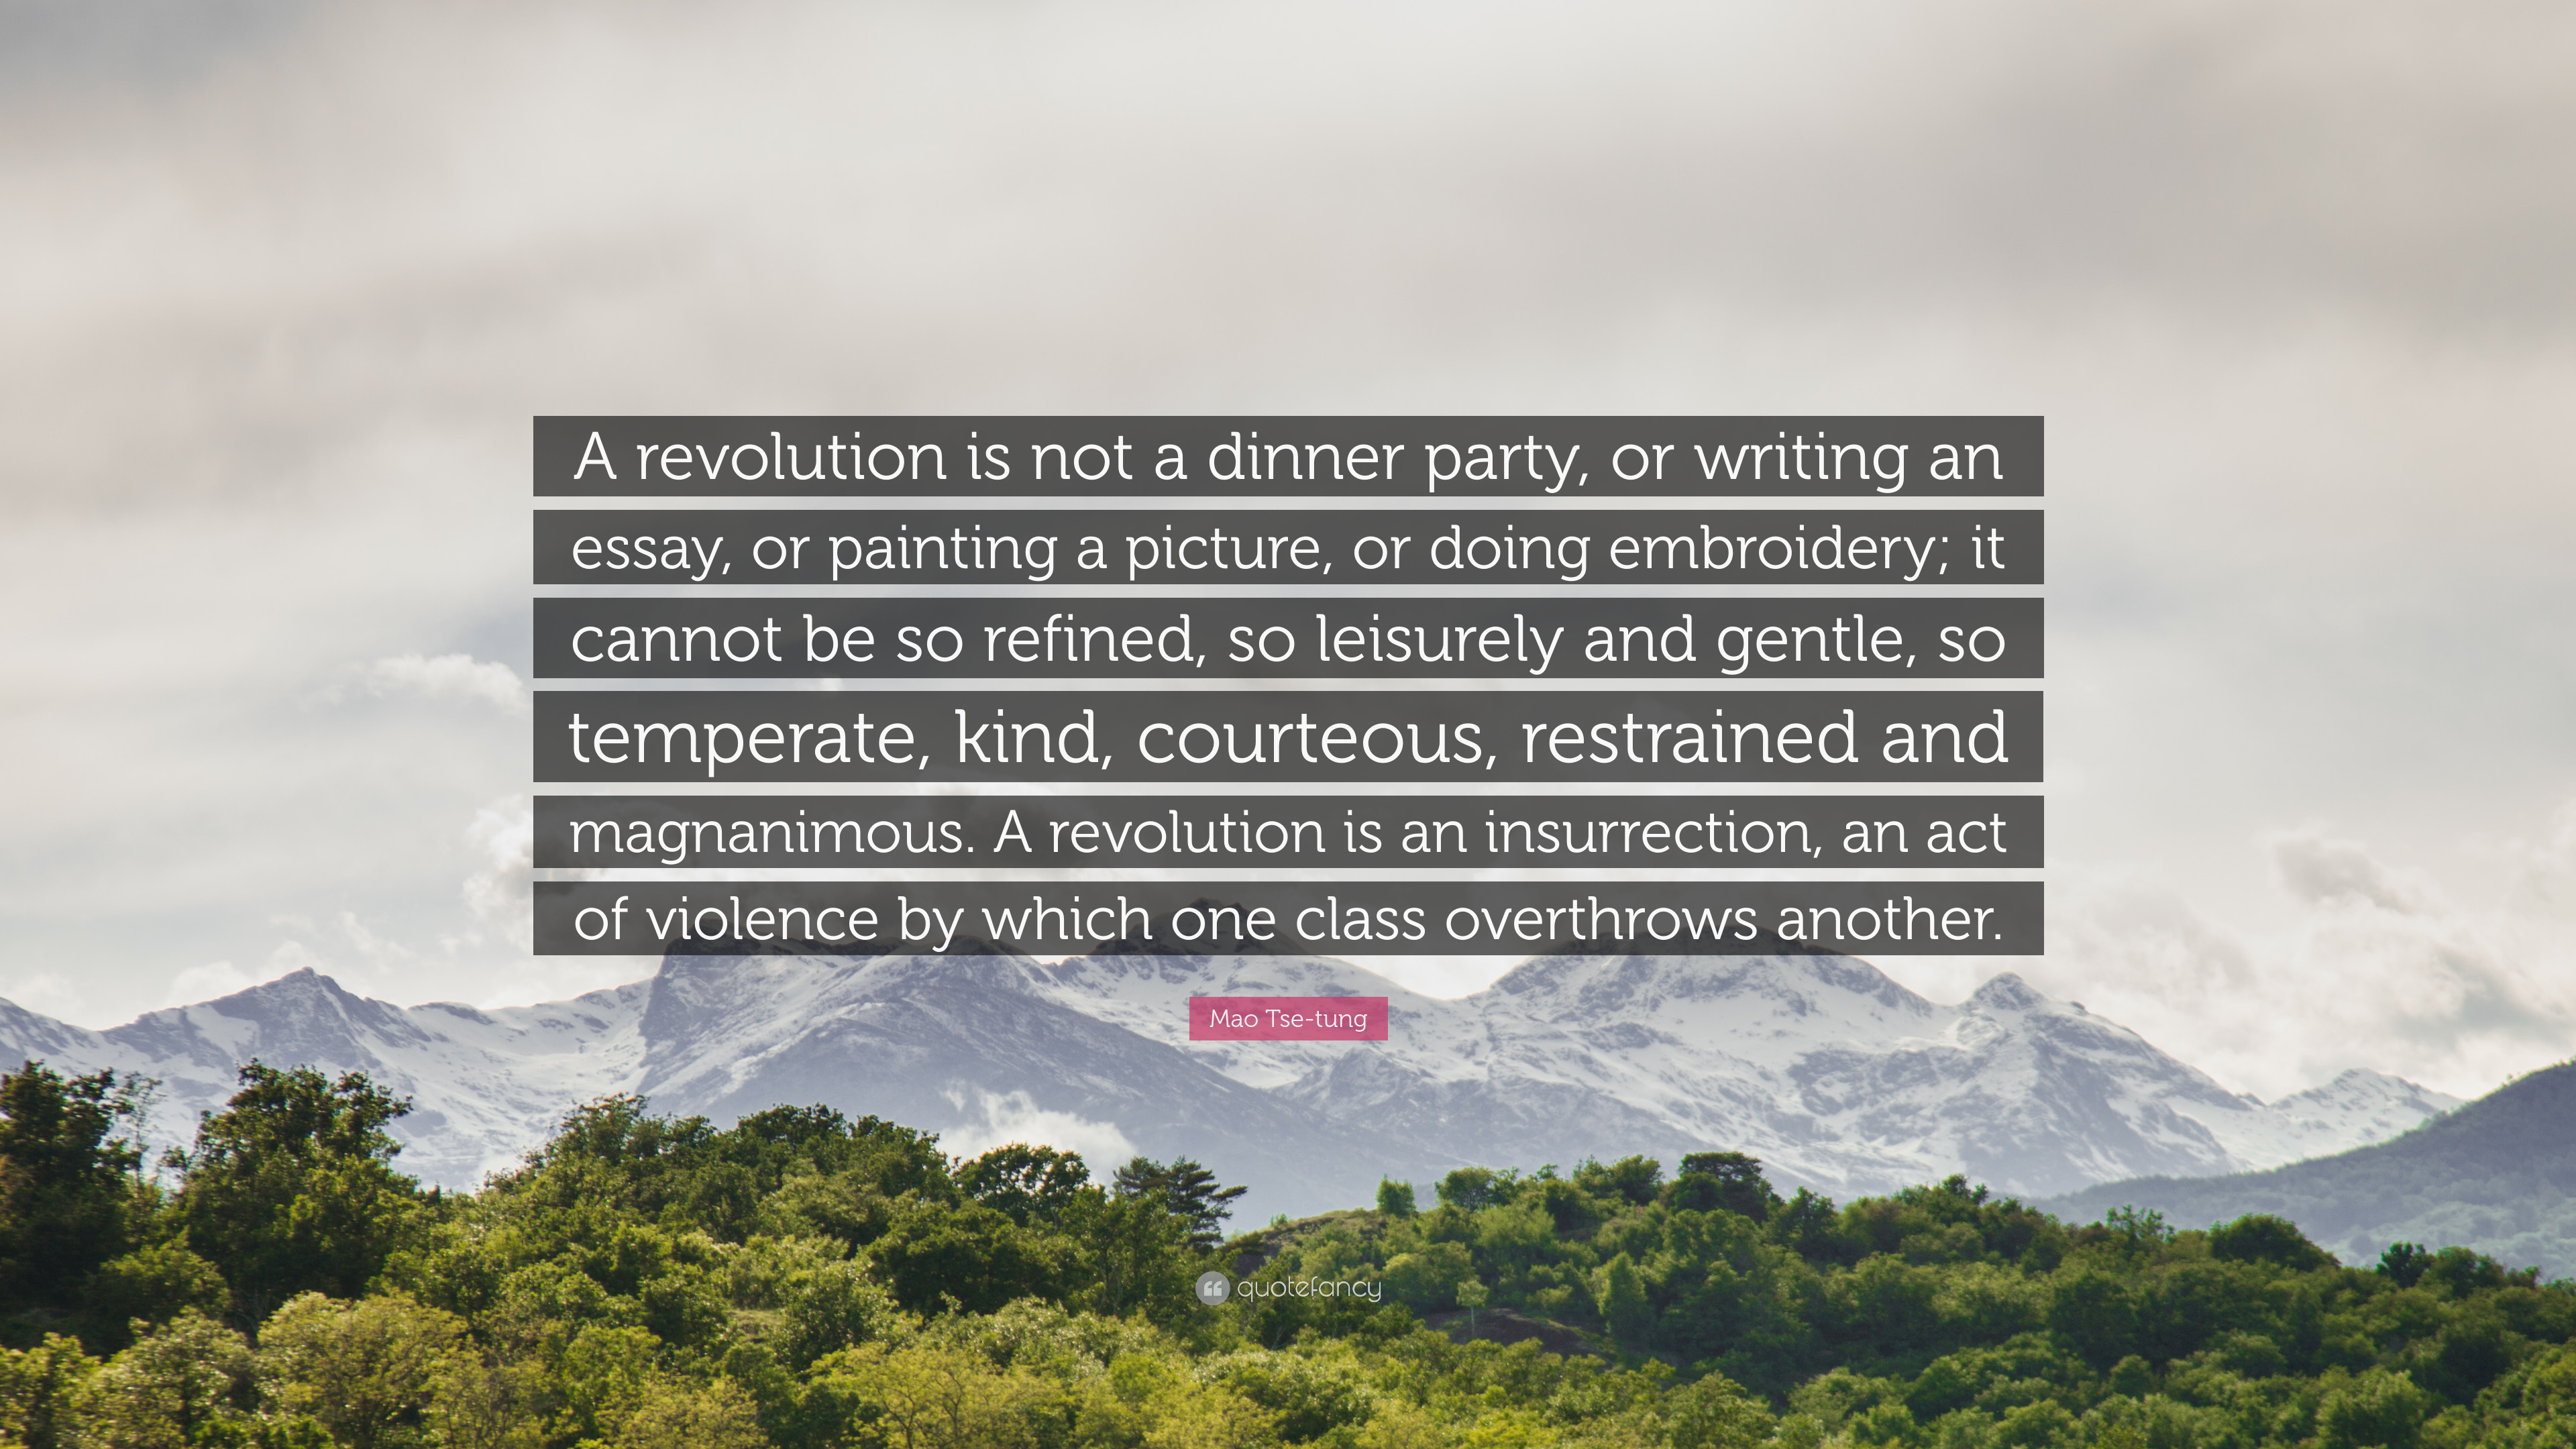 mao tse tung quotes quotefancy mao tse tung quote ldquoa revolution is not a dinner party or